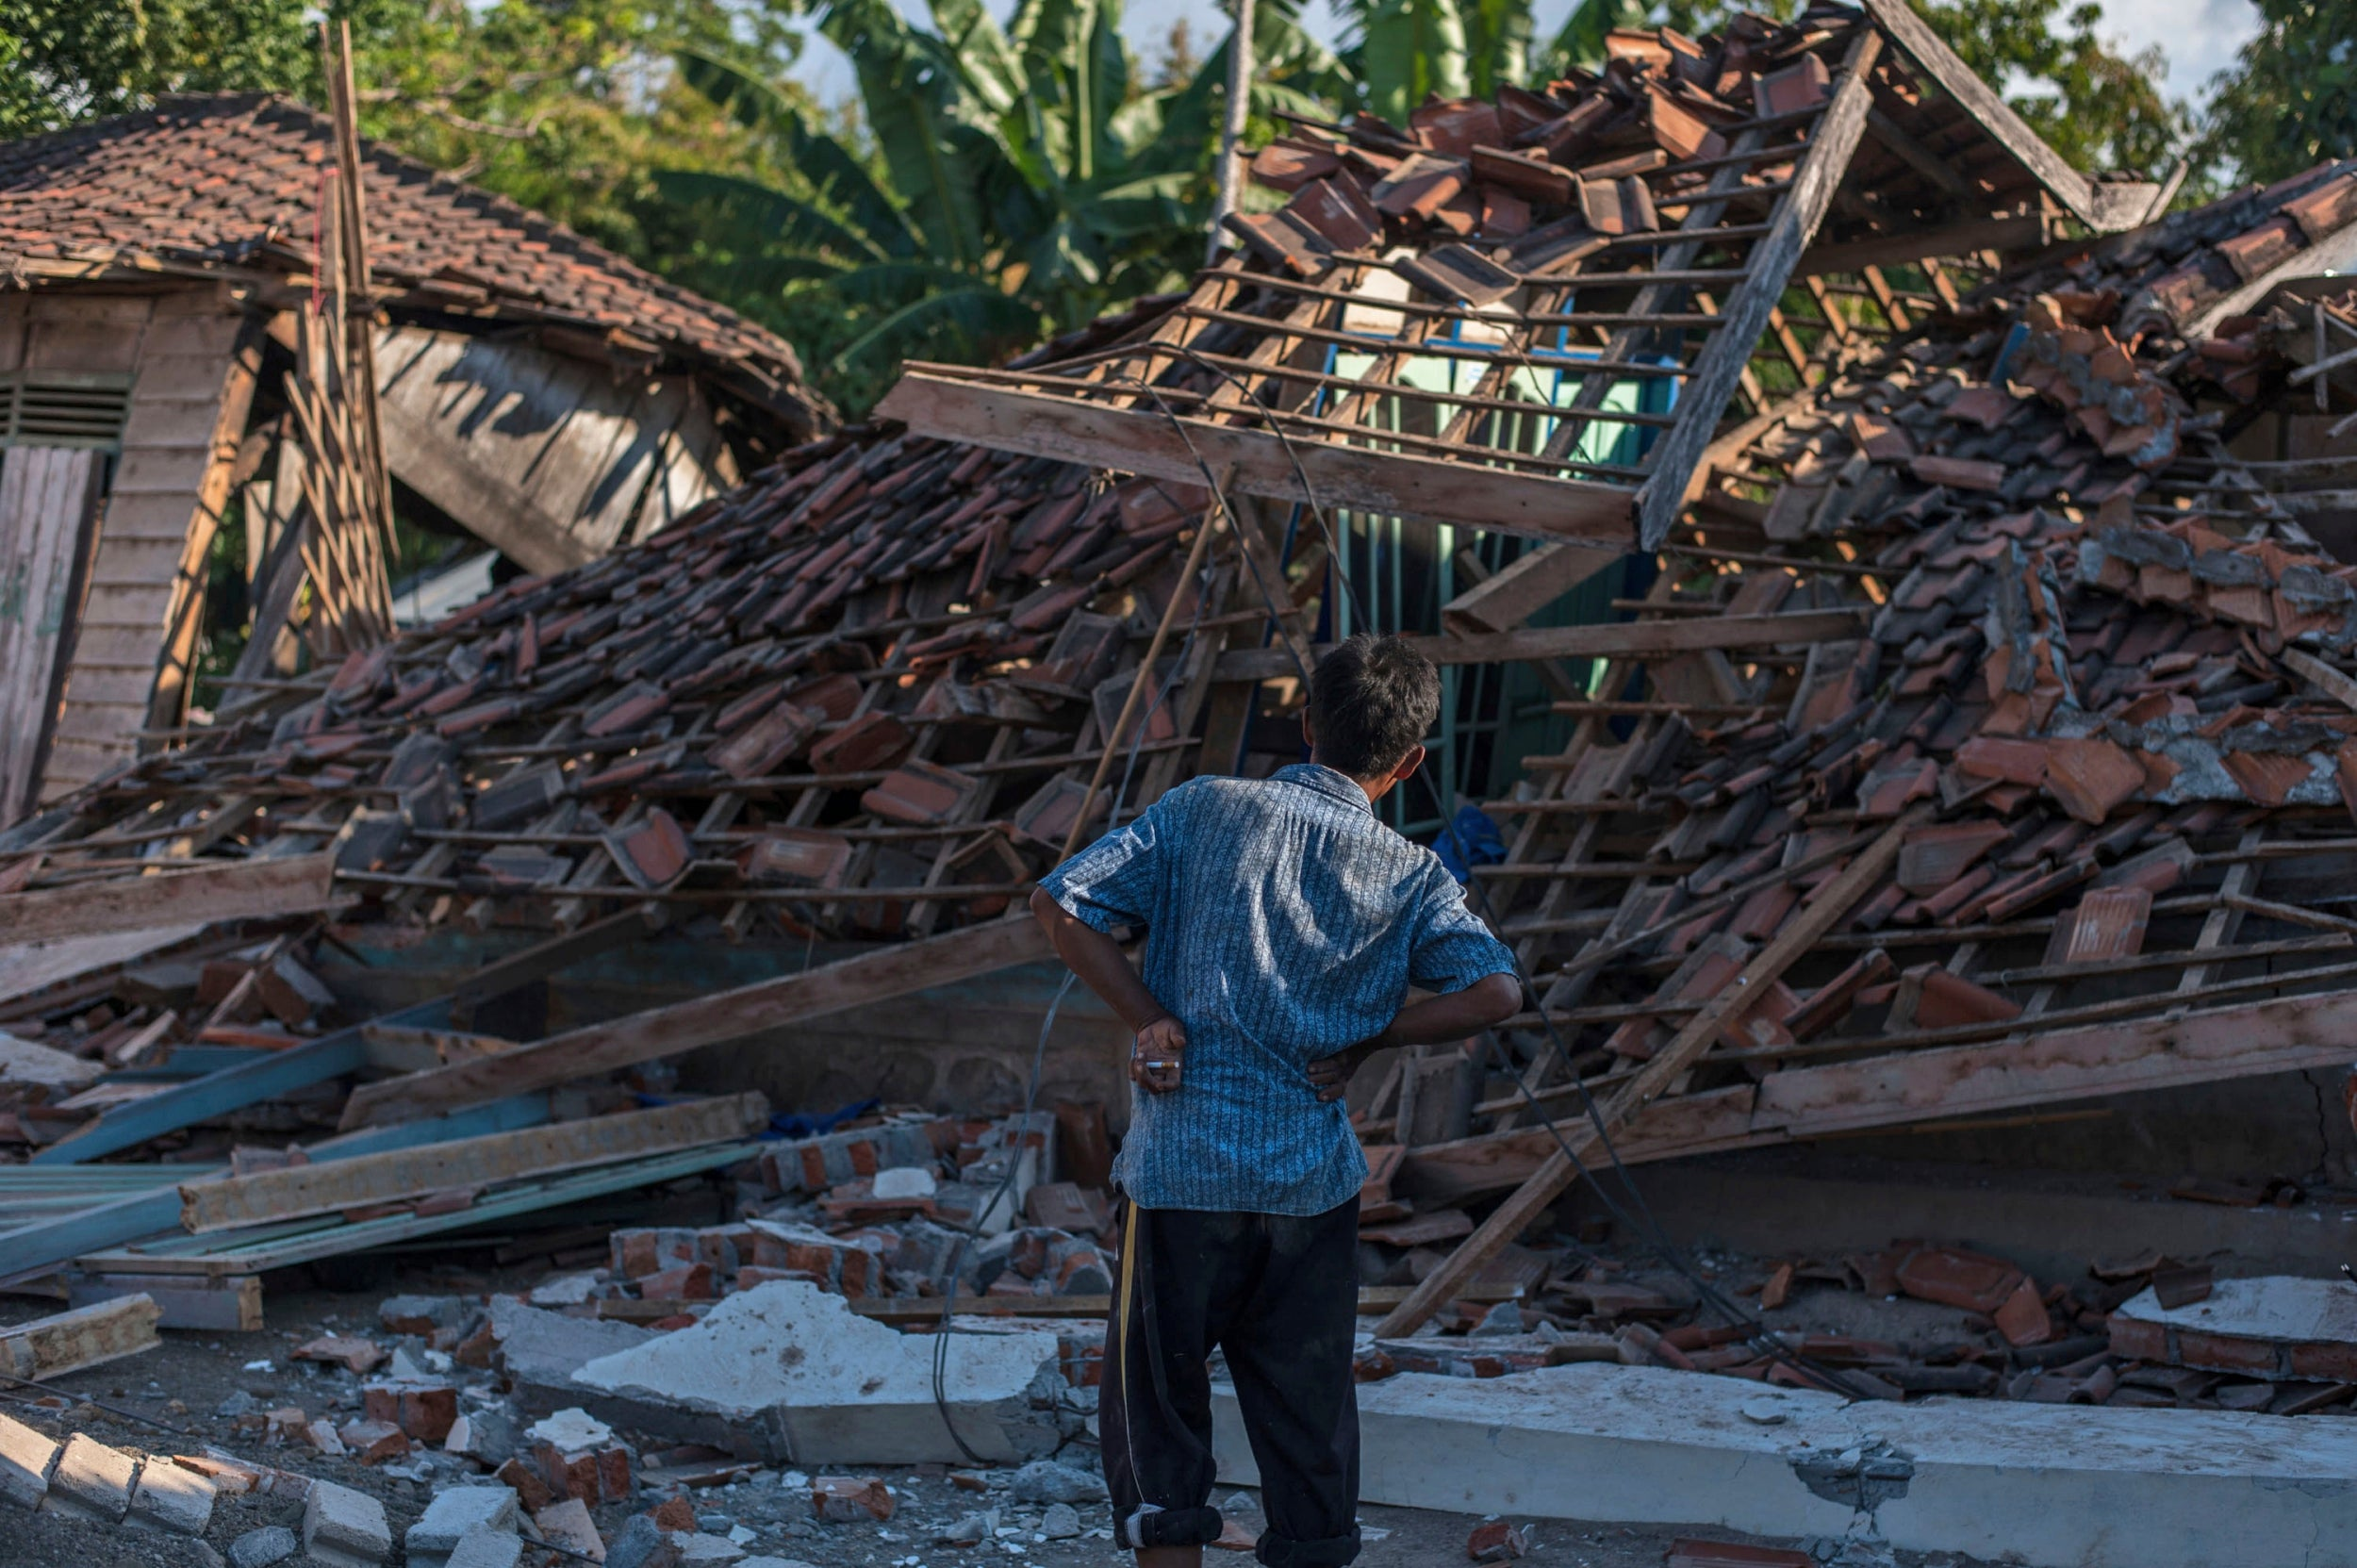 indonesia s lombok island hit by 6 9 magnitude earthquake hours